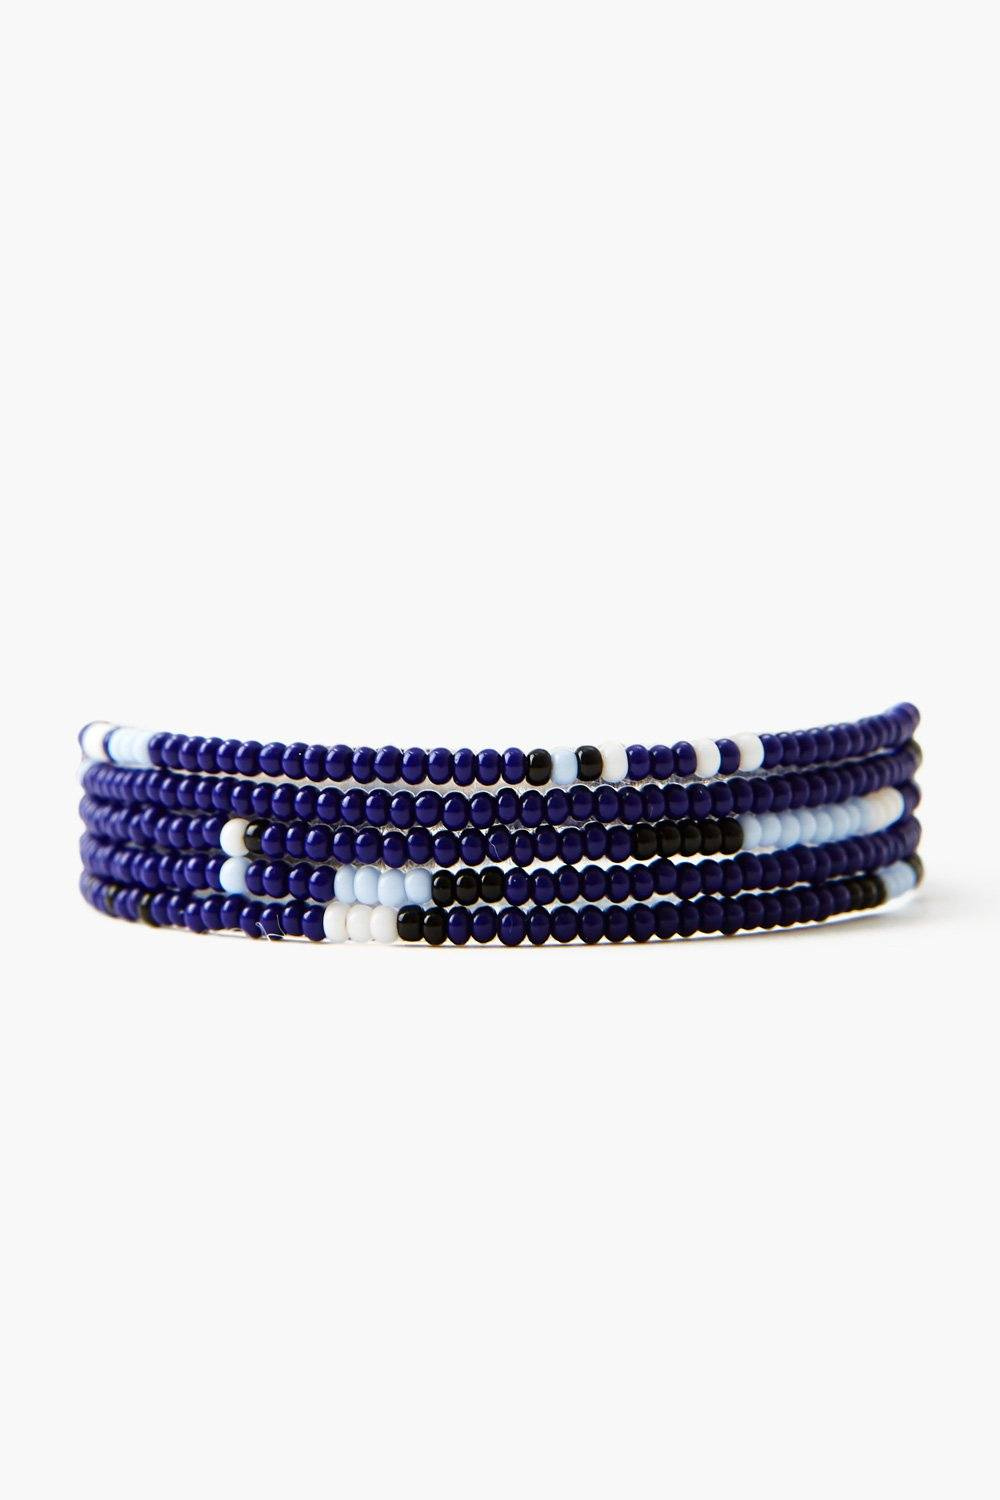 Chan Luu x Ethical Fashion Initiative Indigo Beaded Naked Wrap Bracelet